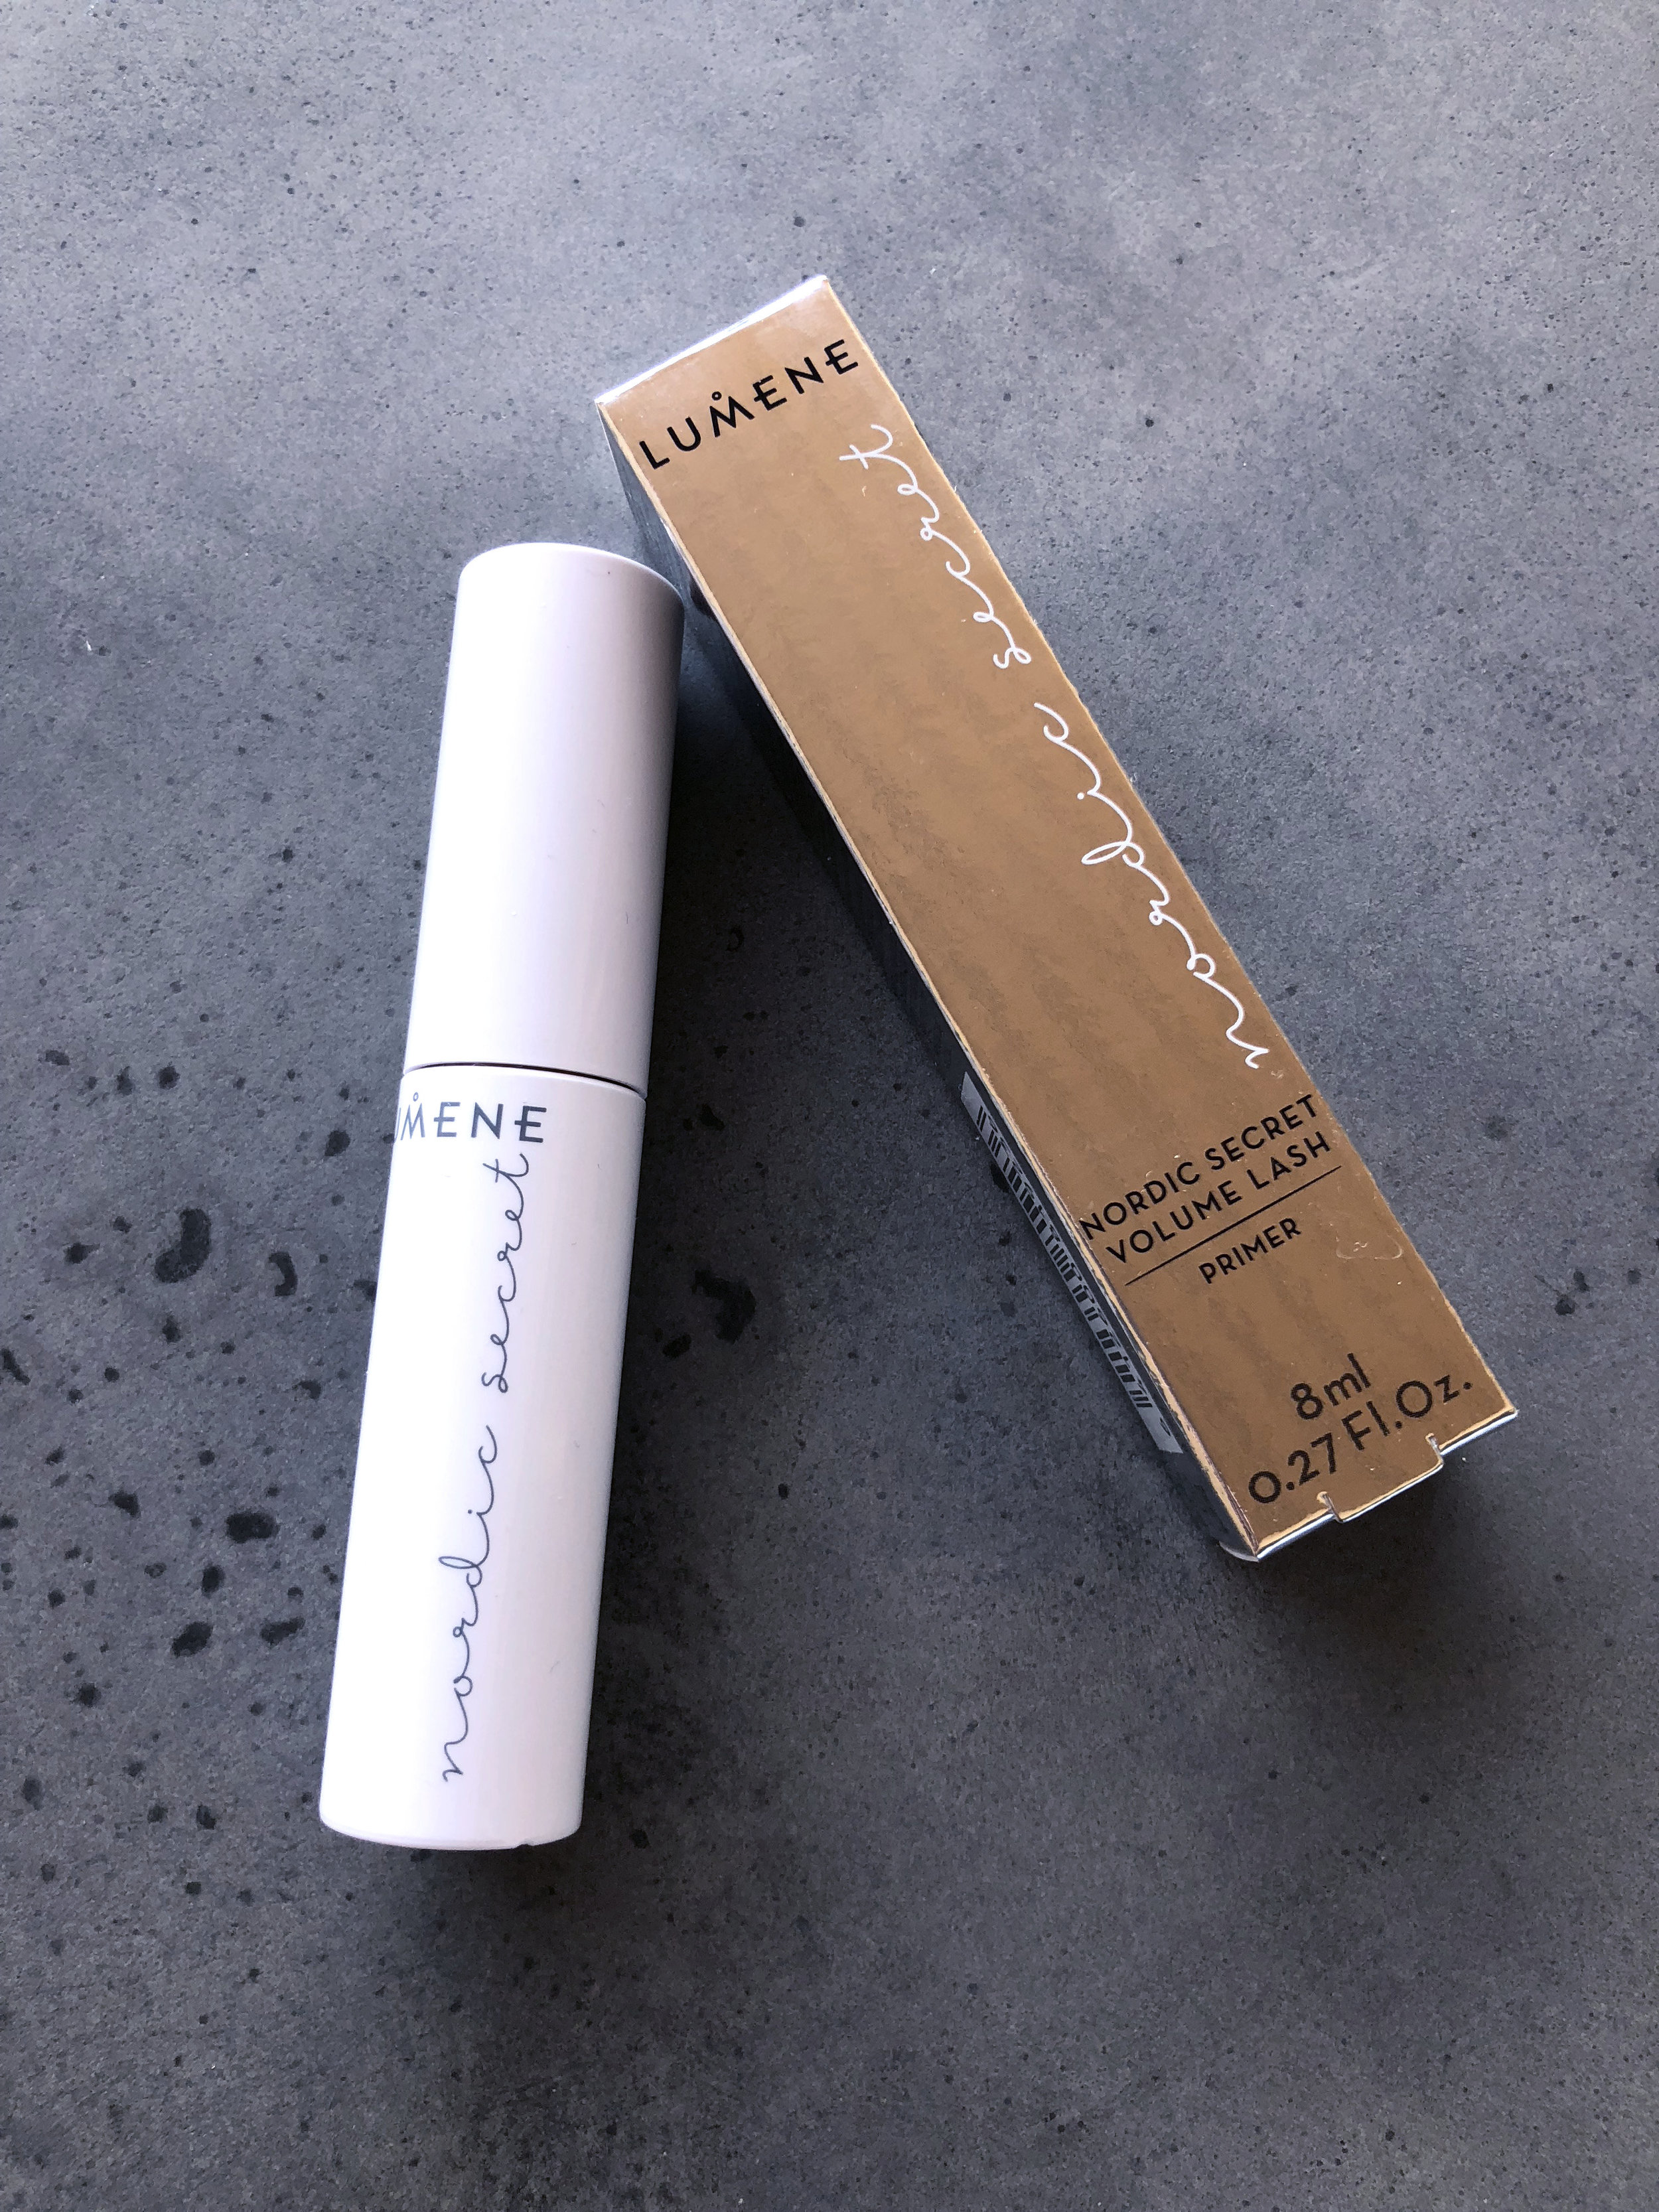 Lumene Nordic Secret Lash Primer - I have to say that if someone has succeeded in keeping their lashes curled and looking good when using this product, hit me up with some tips because gosh.. my lashes looked terrible when I tested this primer.